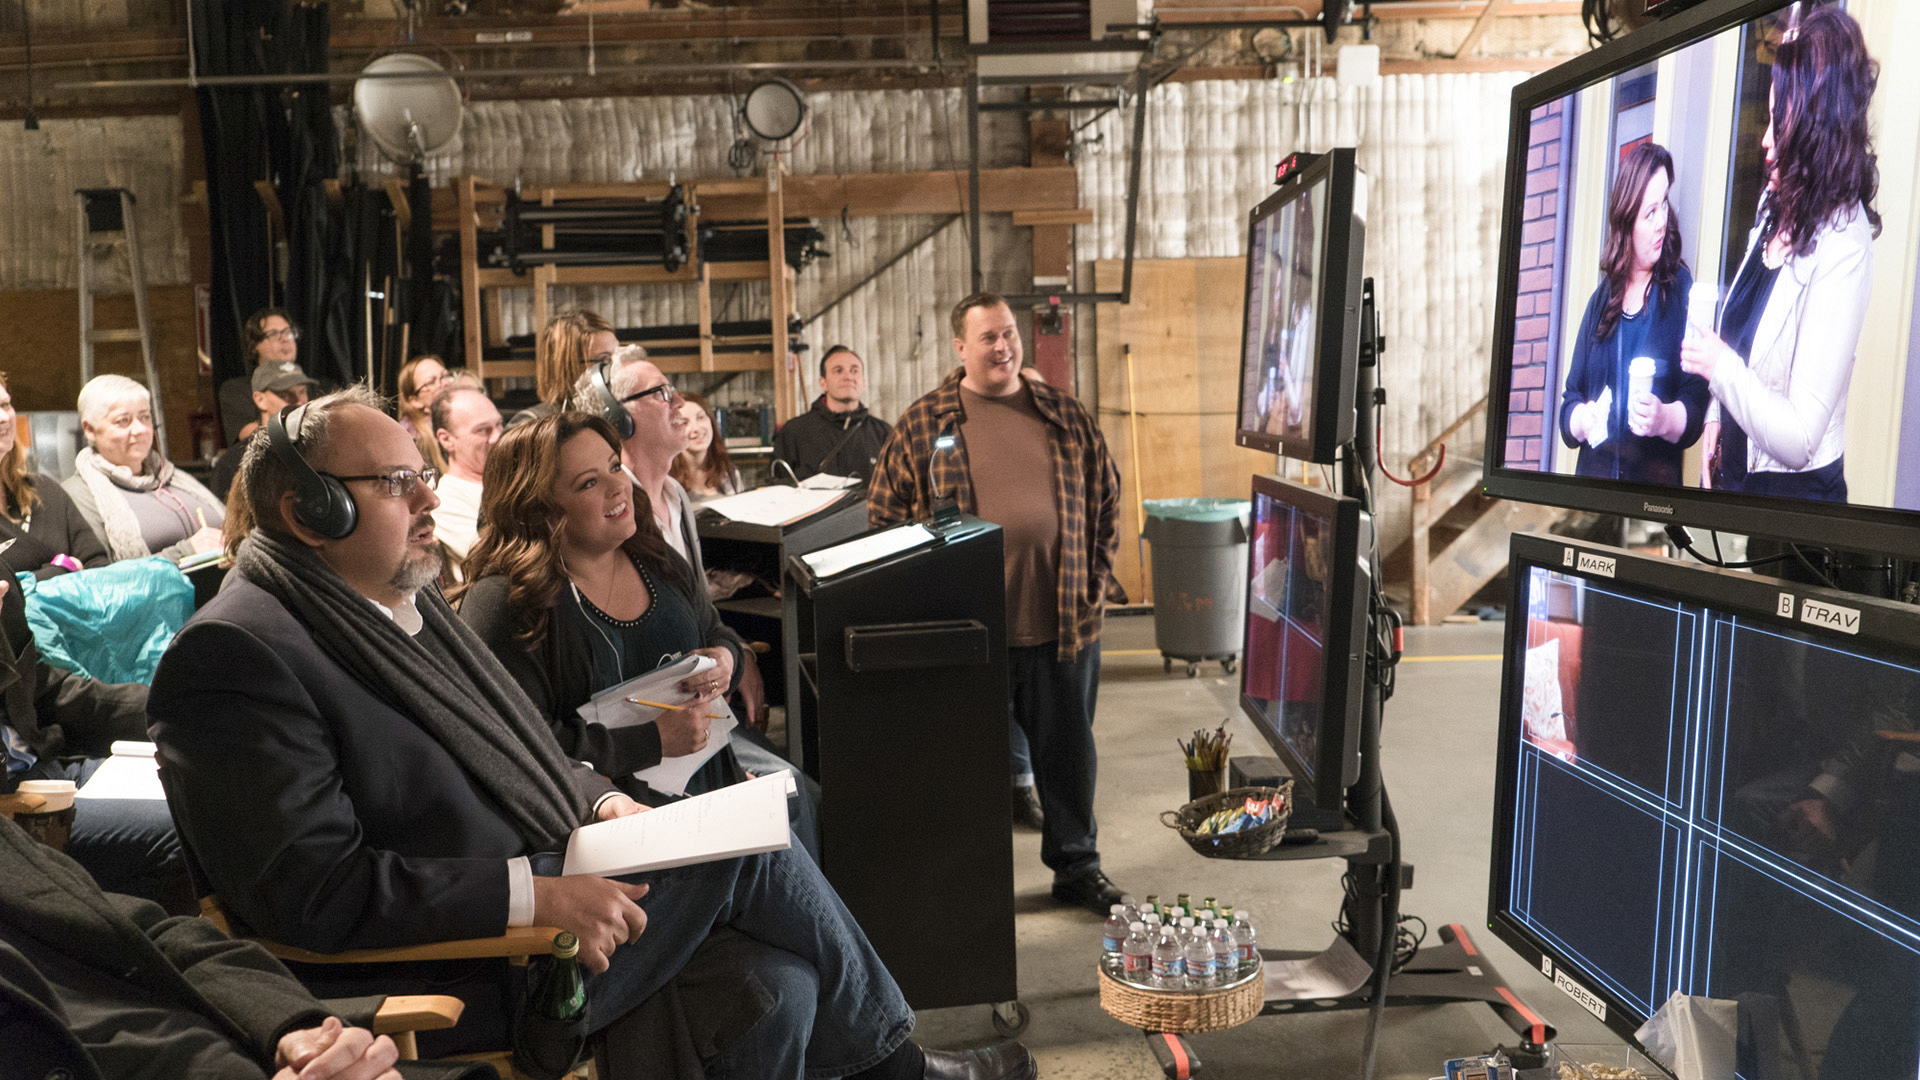 The cast and crew of Mike & Molly watch back a scene together on set.